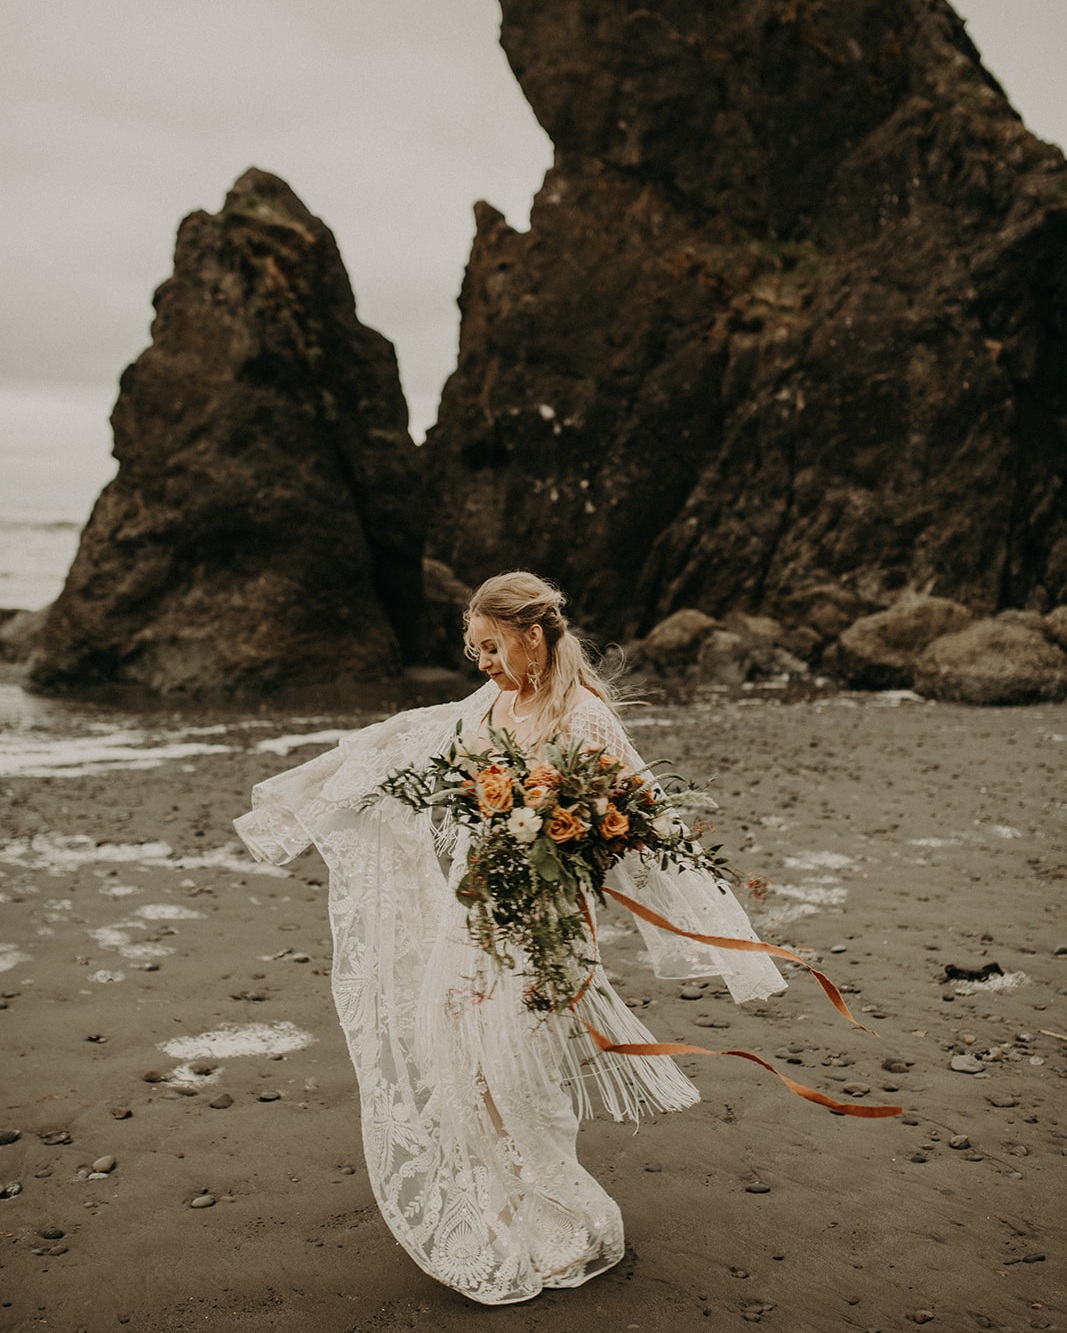 Ruby_Beach_Styled_Elopement_-_Run_Away_with_Me_Elopement_Collective_-_Kamra_Fuller_Photography_-_Portraits-48.jpg